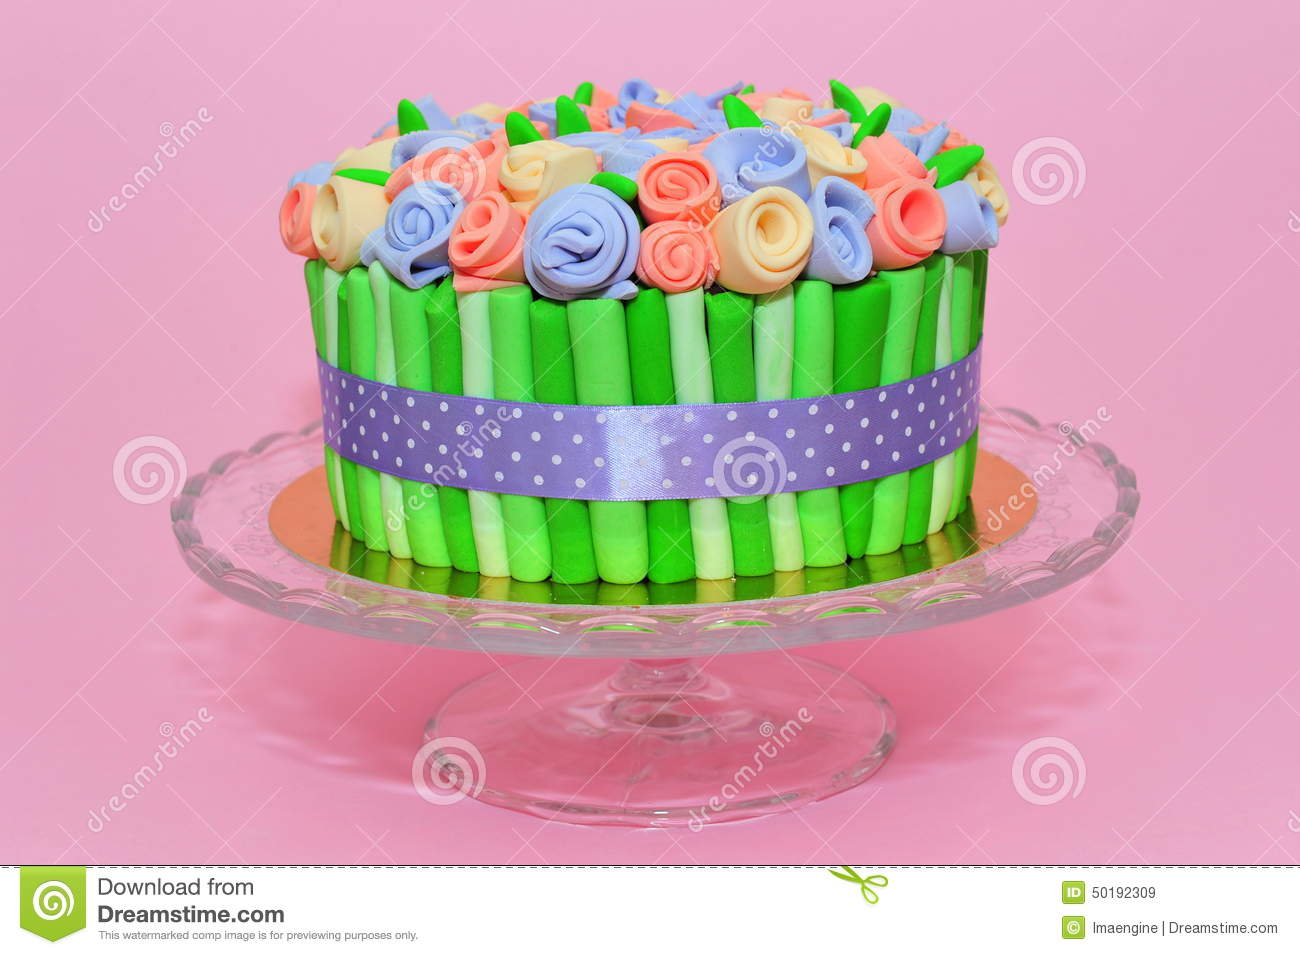 Colorful roses bouquet fondant cake stock image image of crystal download colorful roses bouquet fondant cake stock image image of crystal cool 50192309 izmirmasajfo